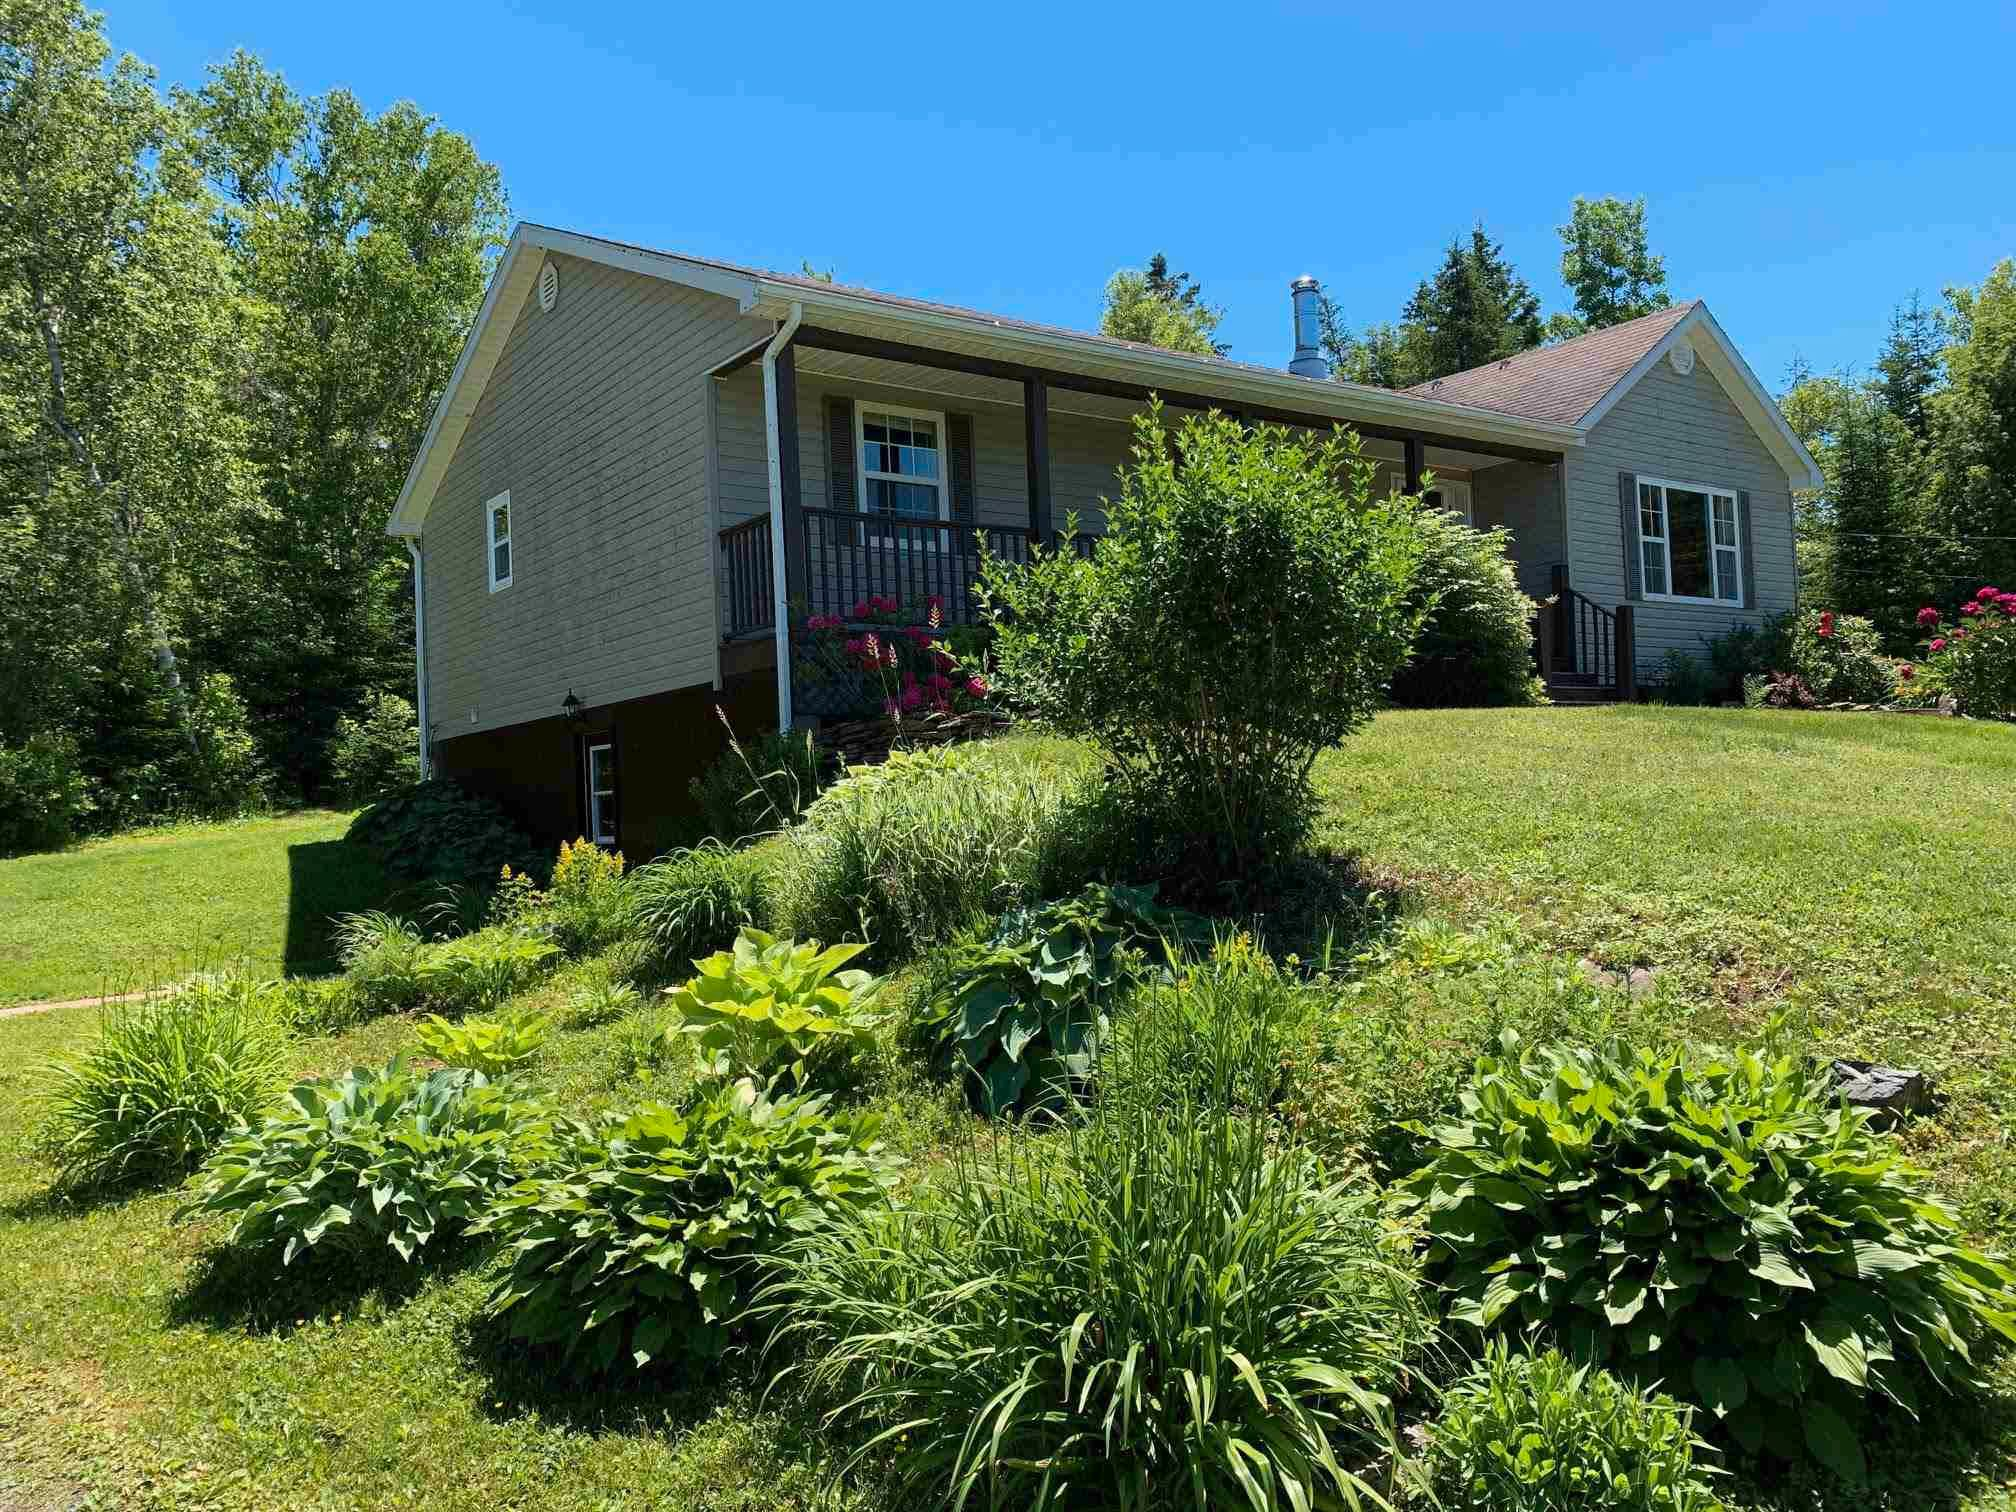 Main Photo: 959 Hardwood Hill Road in Heathbell: 108-Rural Pictou County Residential for sale (Northern Region)  : MLS®# 202116352